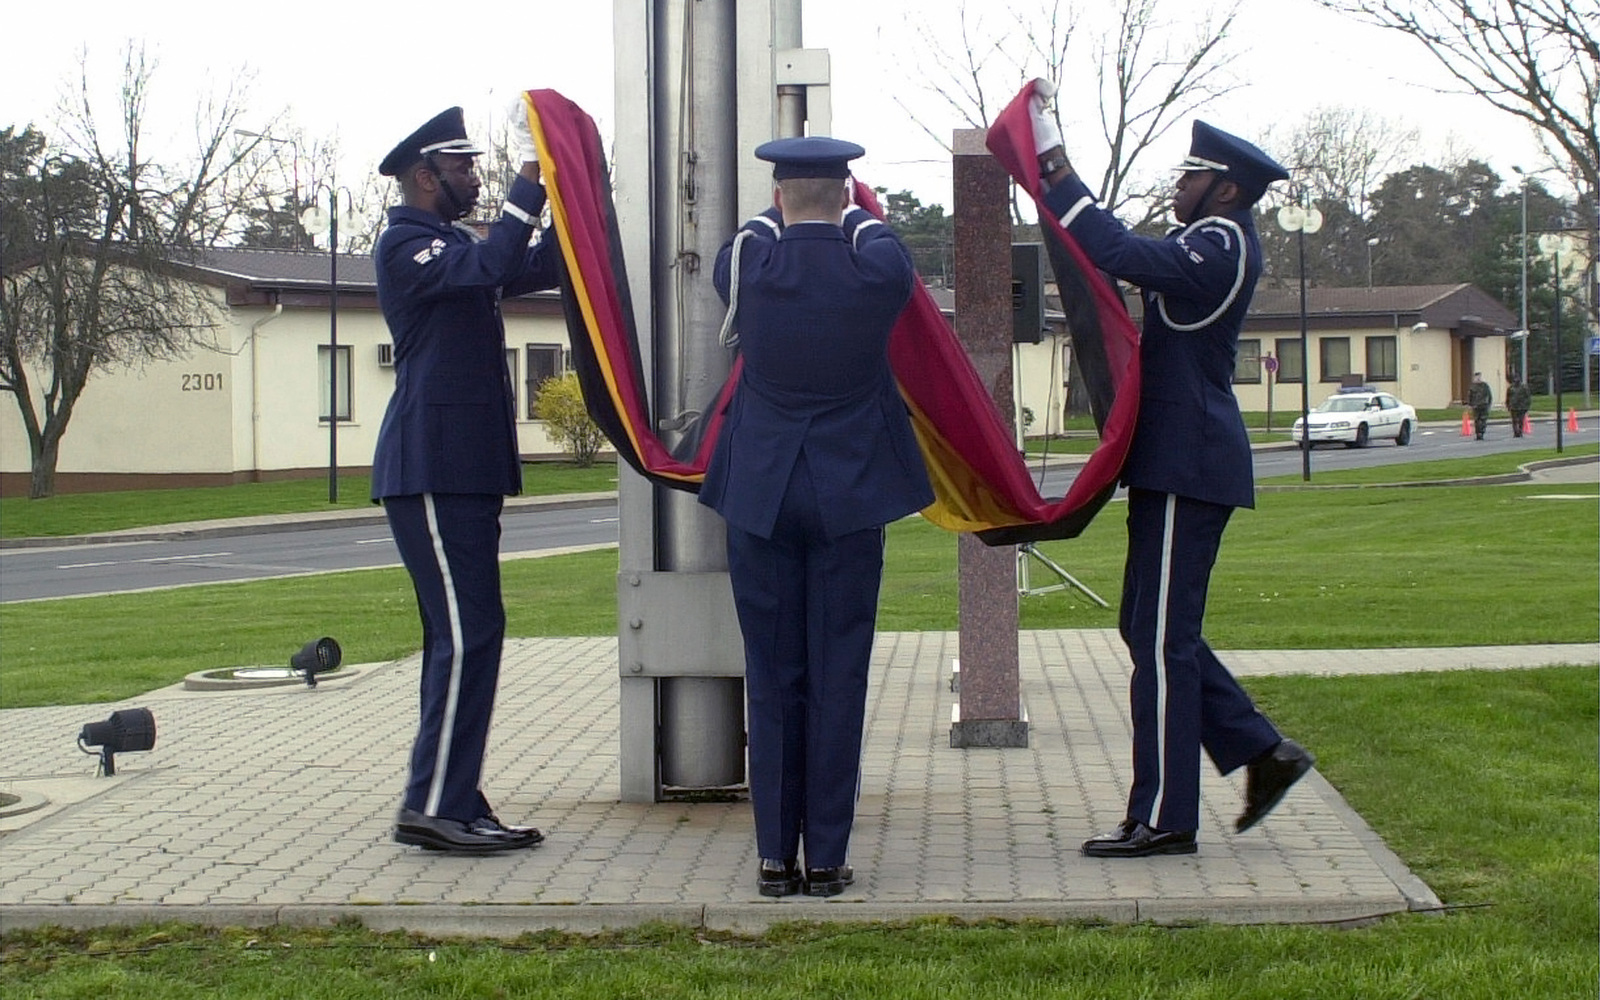 SENIOR AIRMAN (SRA) David Sands, AIRMAN First Class (A1C), Andrew Absher and A1C Jonathan Richardson all members of the 86th Airlift Wings Honor Guard fold the German flag during the Wing Retreat Ceremony at Ramstein Air Base, Germany on 30 March 2001